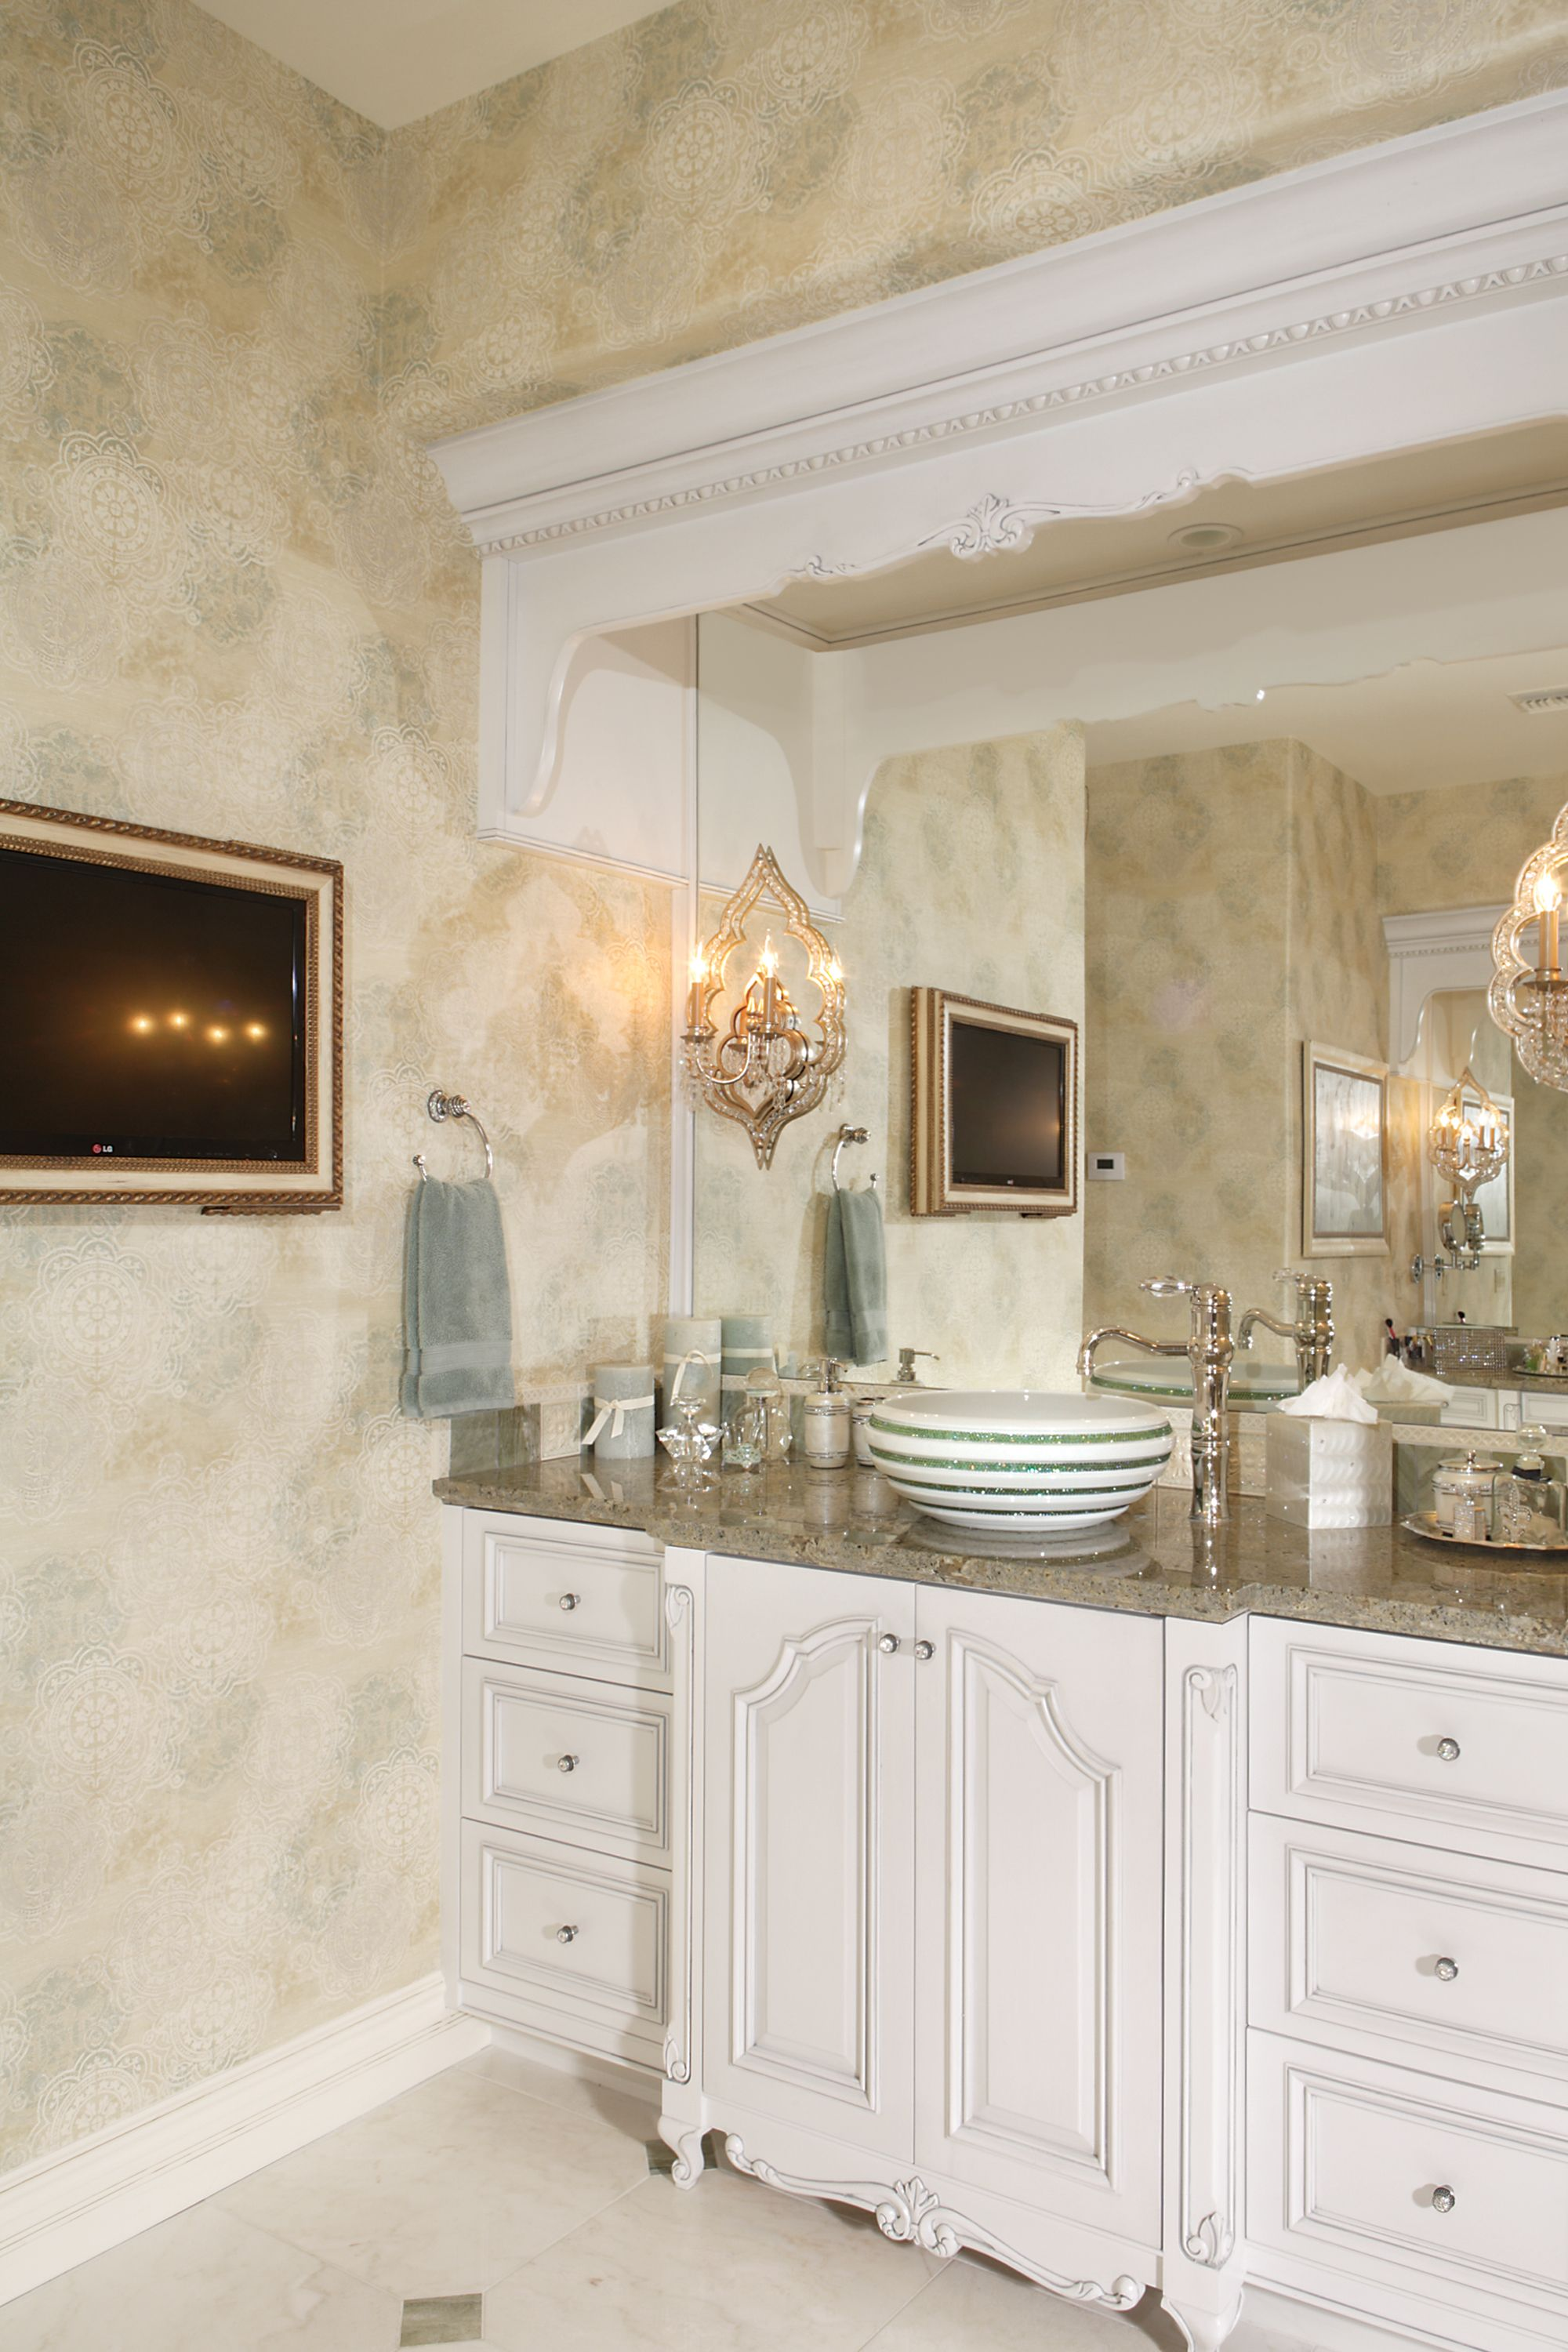 53 Most Fabulous Traditional Style Bathroom Designs Ever: Pin By Guided Home Design On Timeless Elegance (With